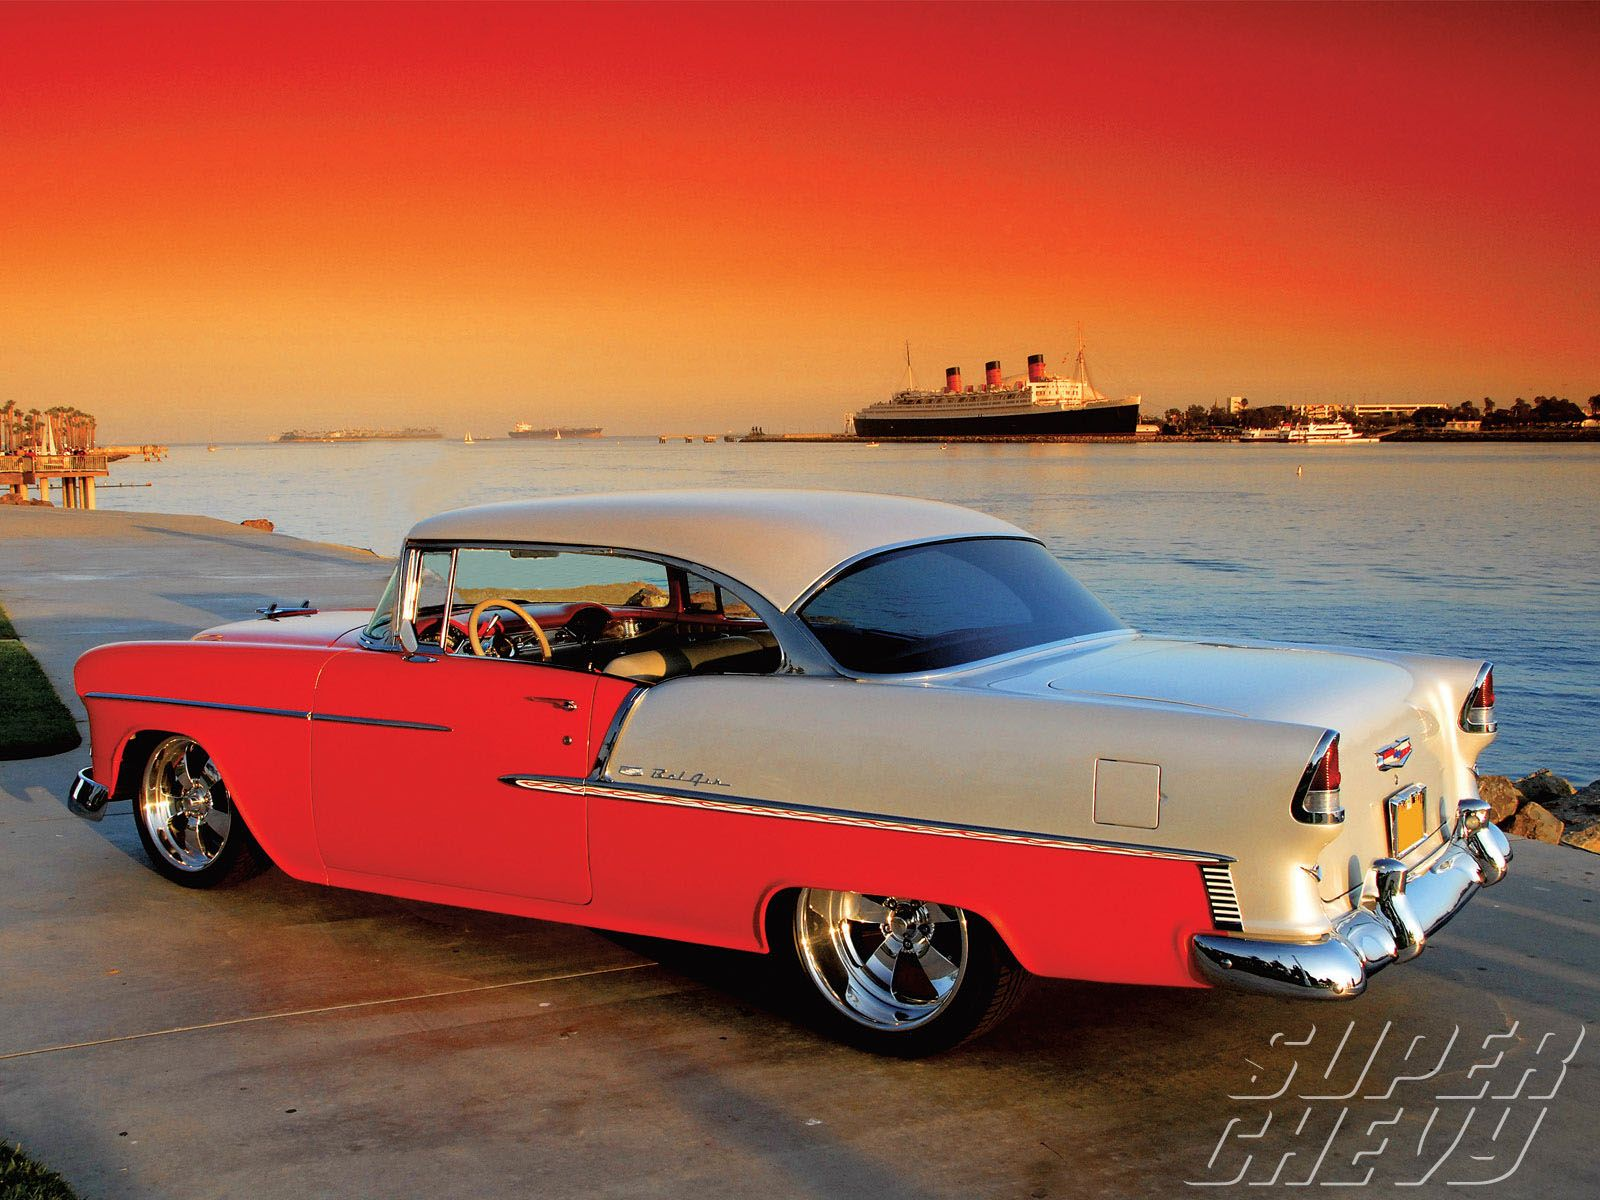 To own a 1955 chevy belair 2 door hardtop